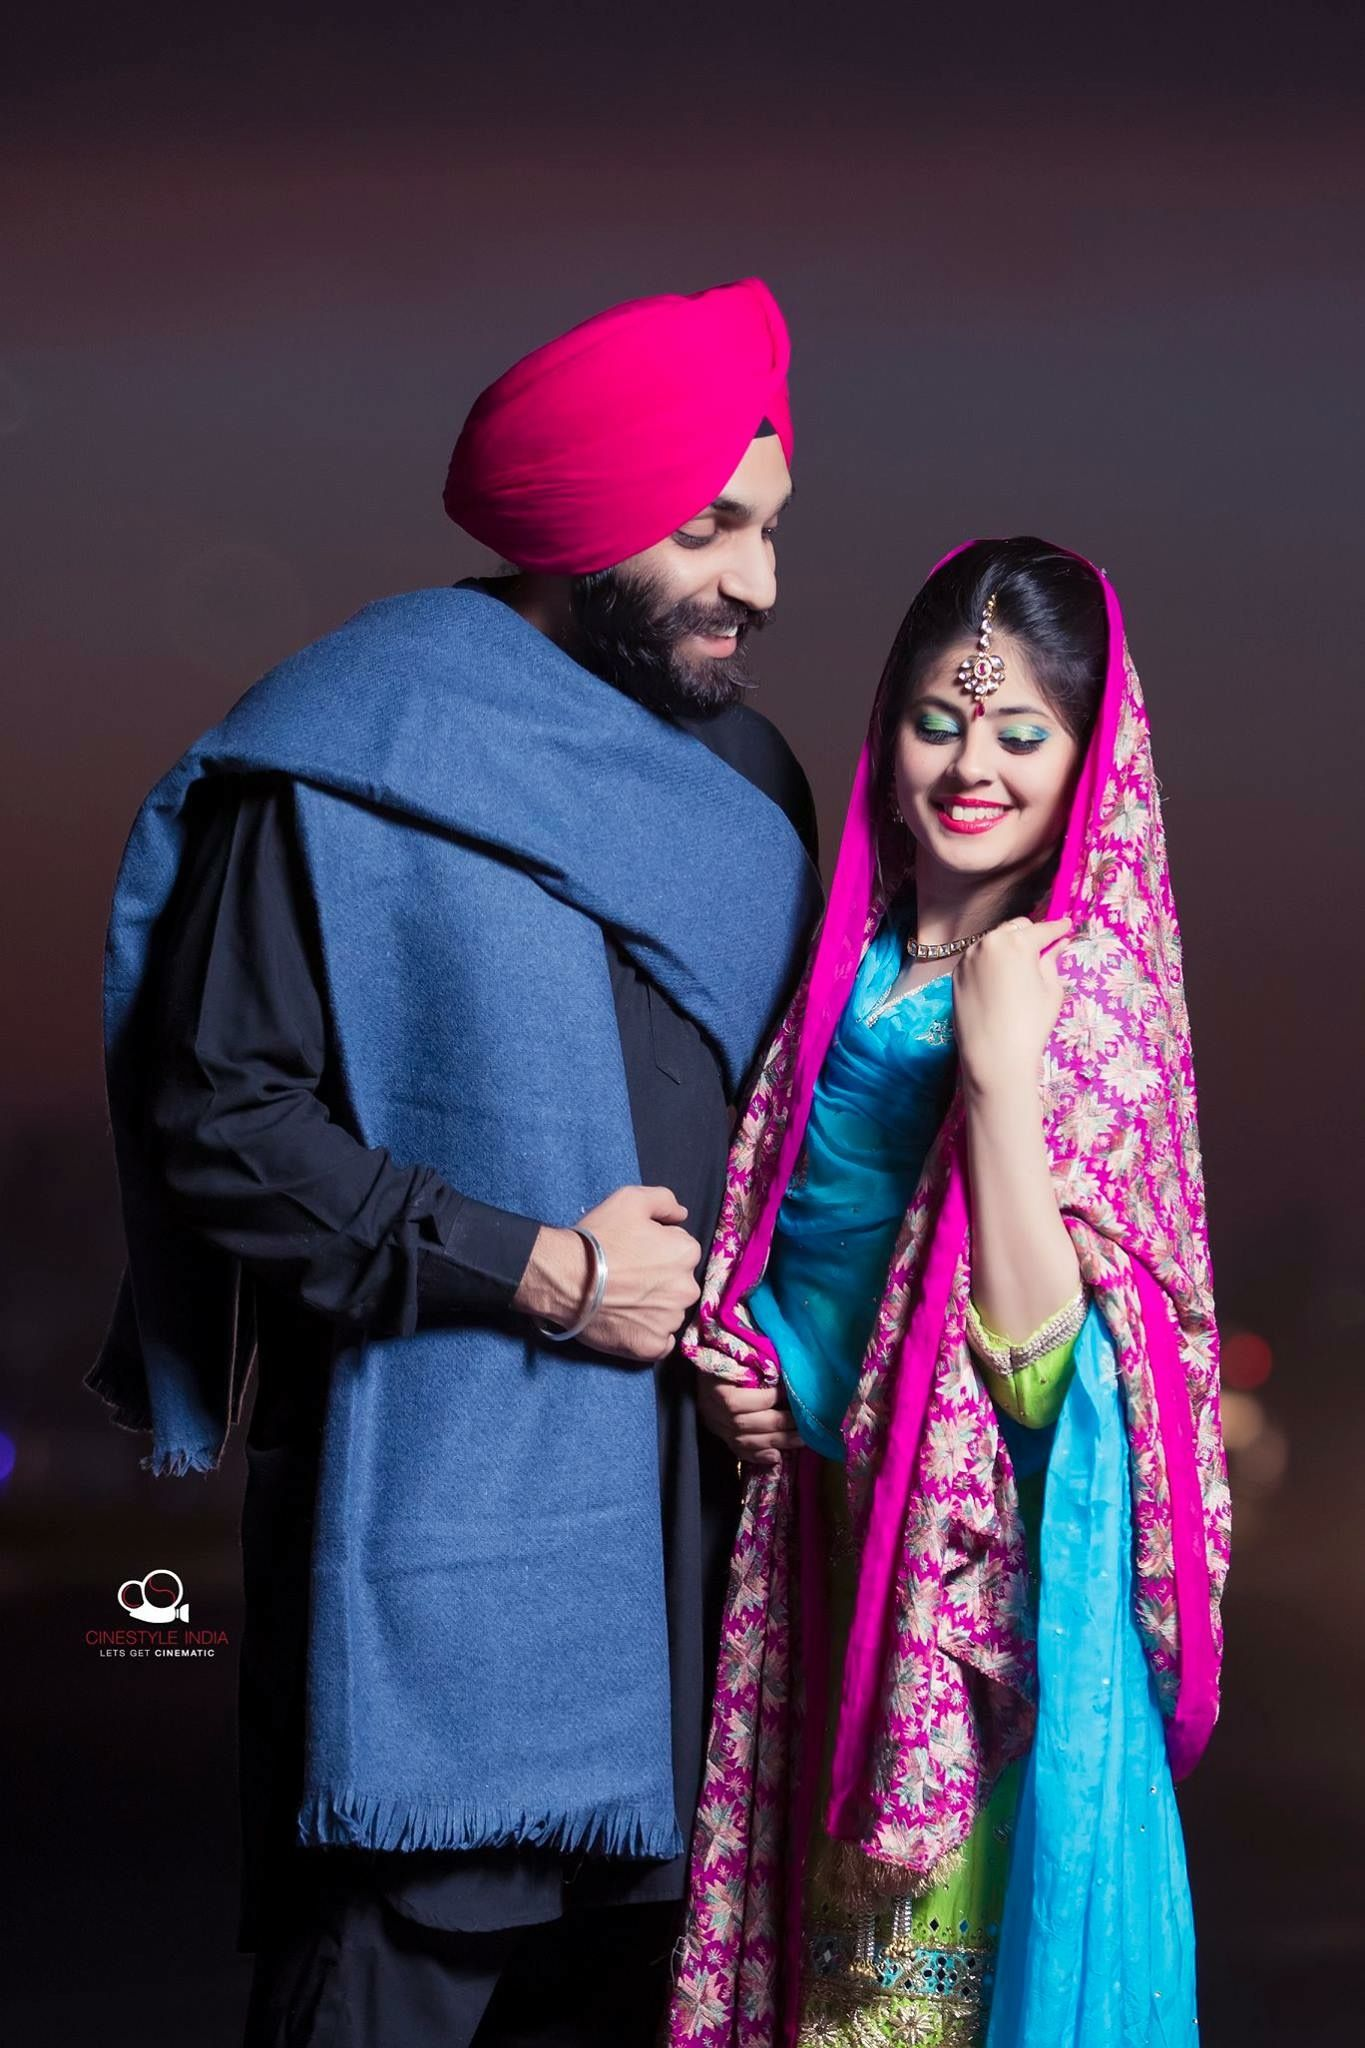 Pin by ms new sad status on mehmood in 2019 | Punjabi wedding couple